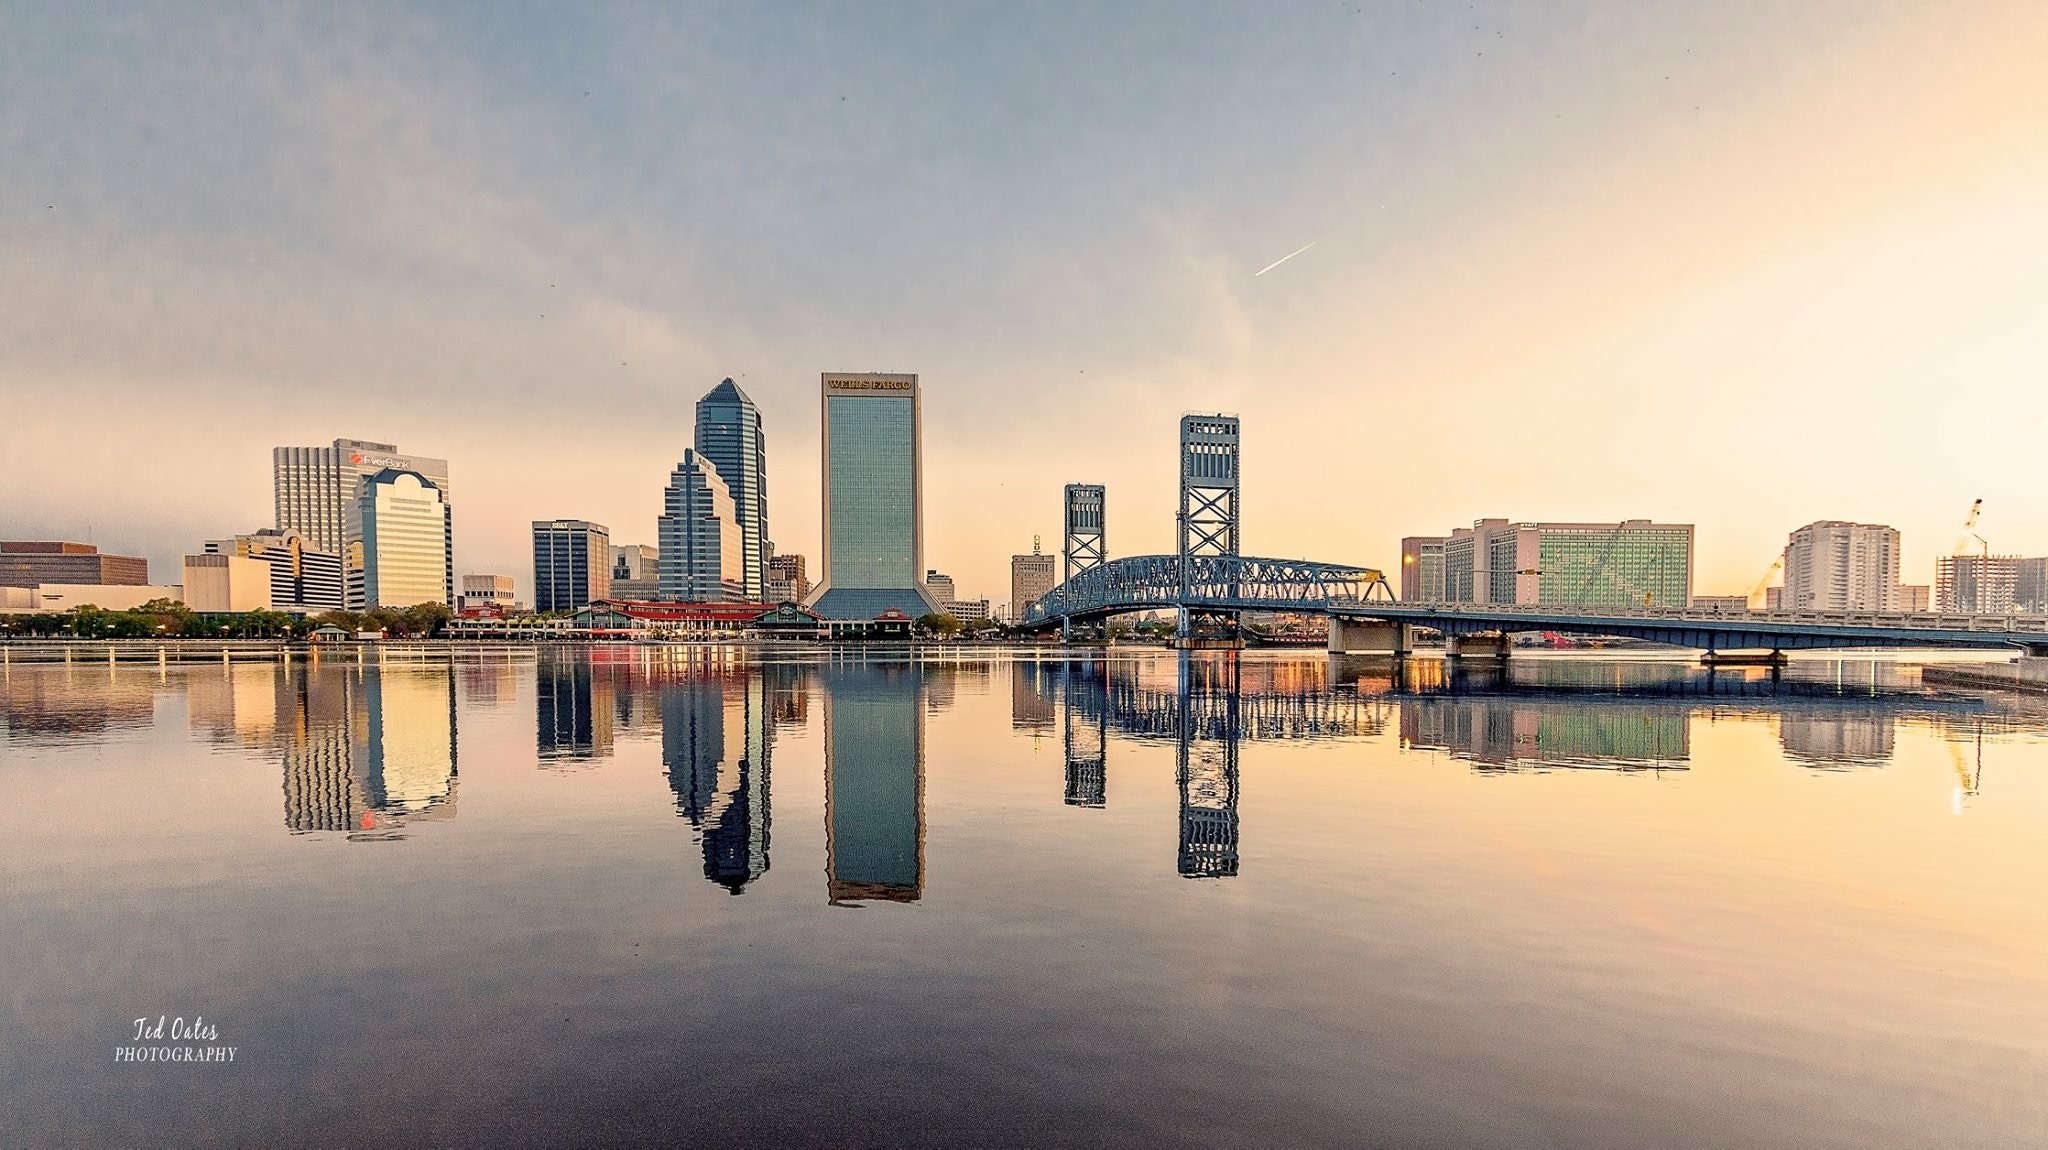 Downtown-Jacksonville by Ted Michael Oates Jr.